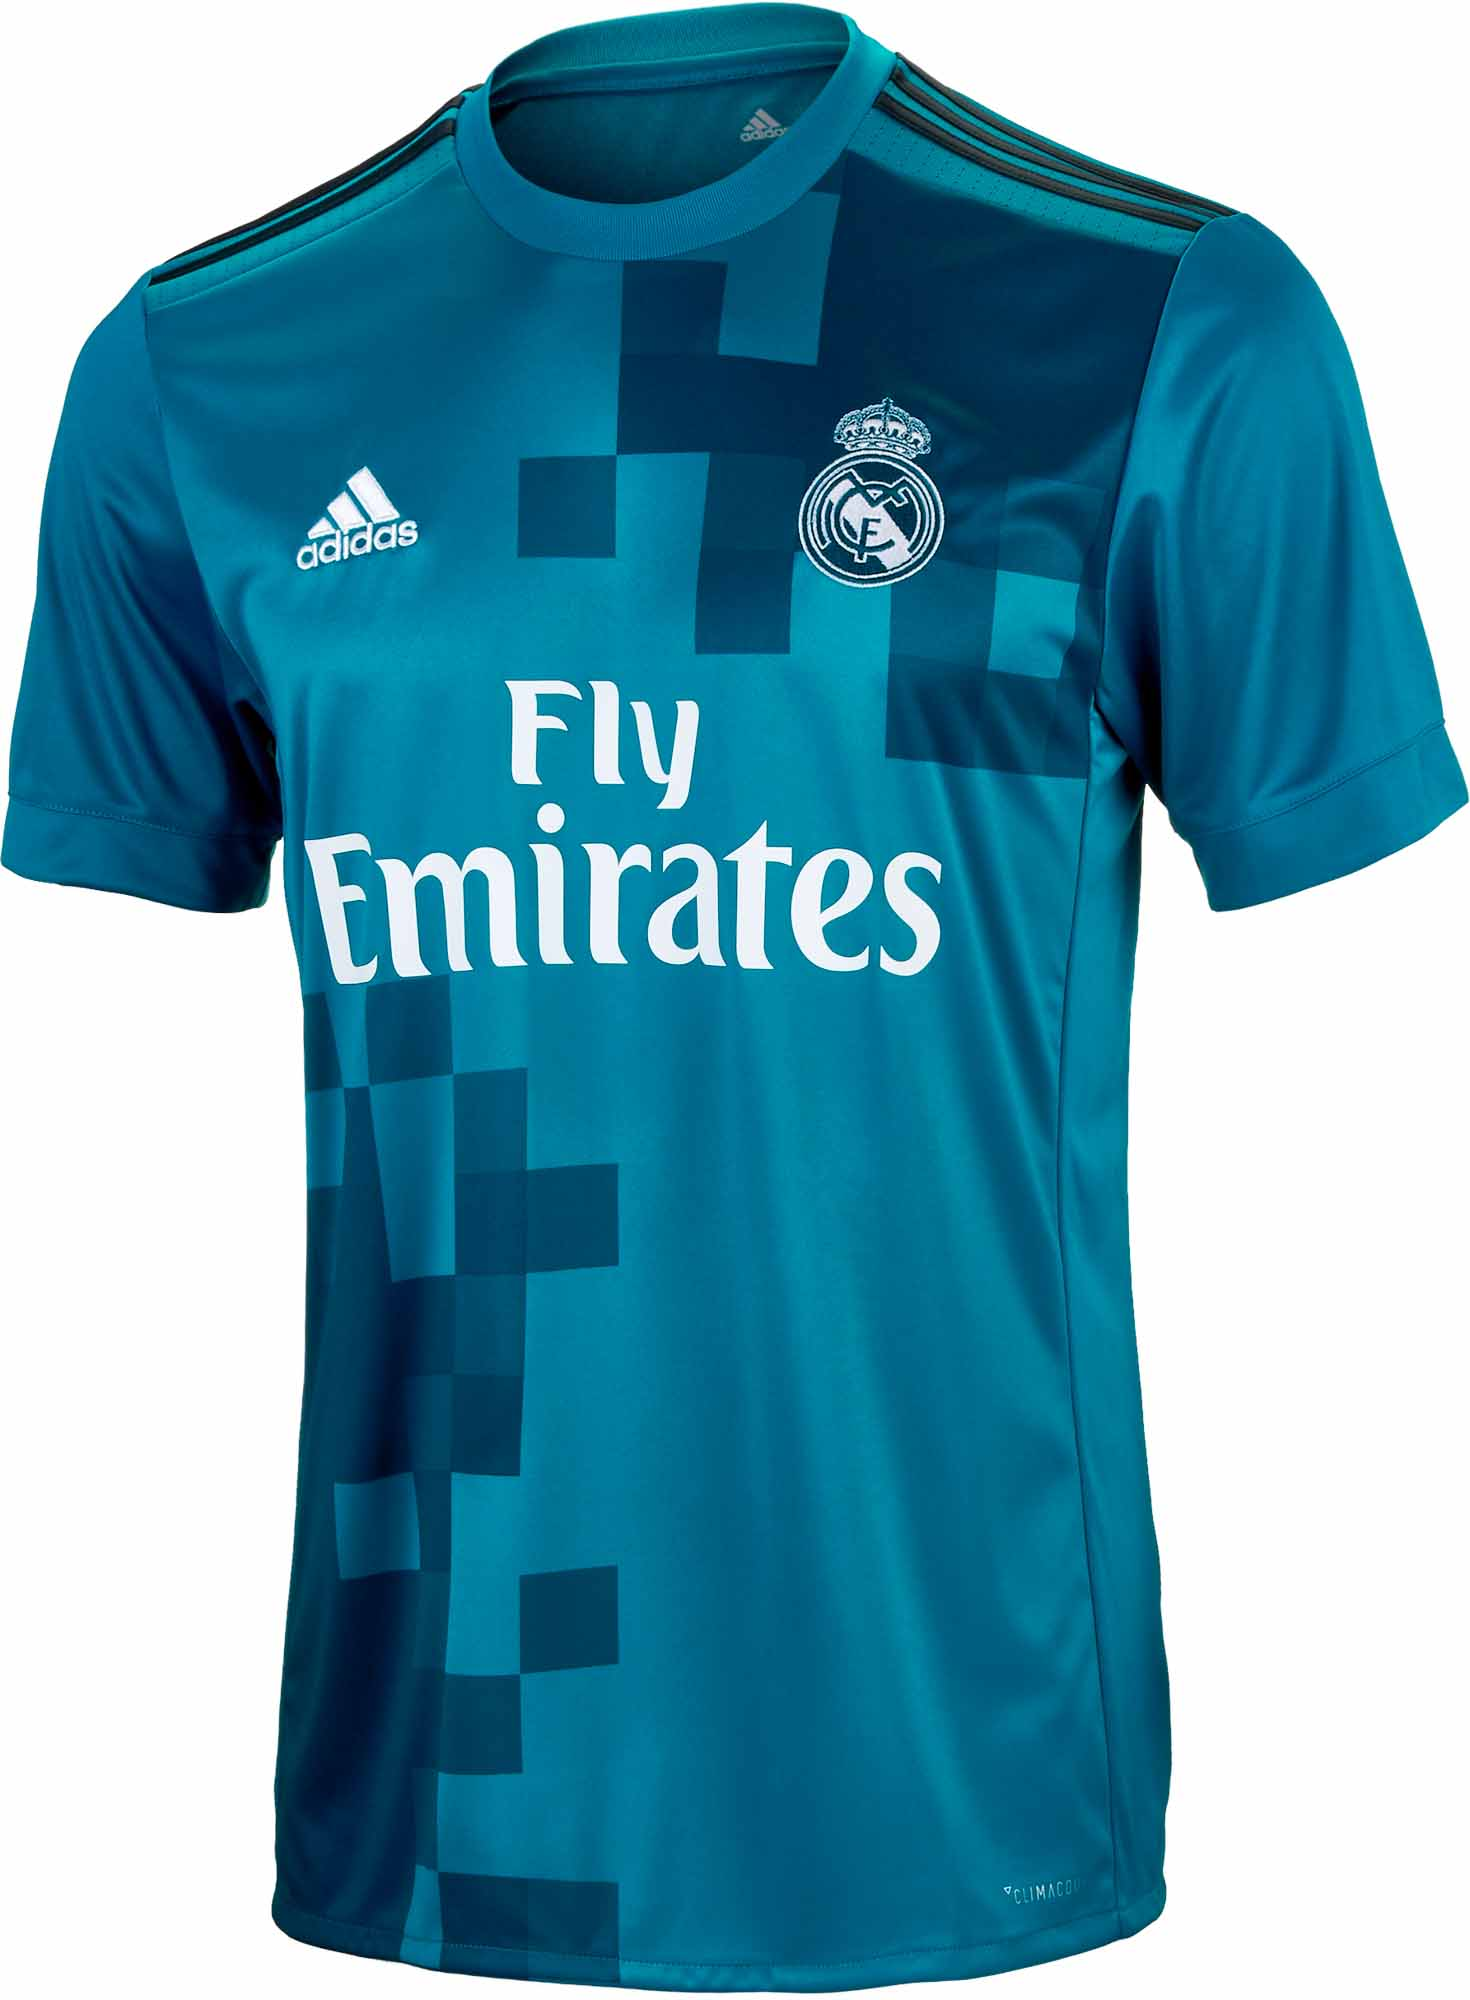 best sneakers 2f495 6b384 Kids 2017/18 adidas Real Madrid 3rd Jersey